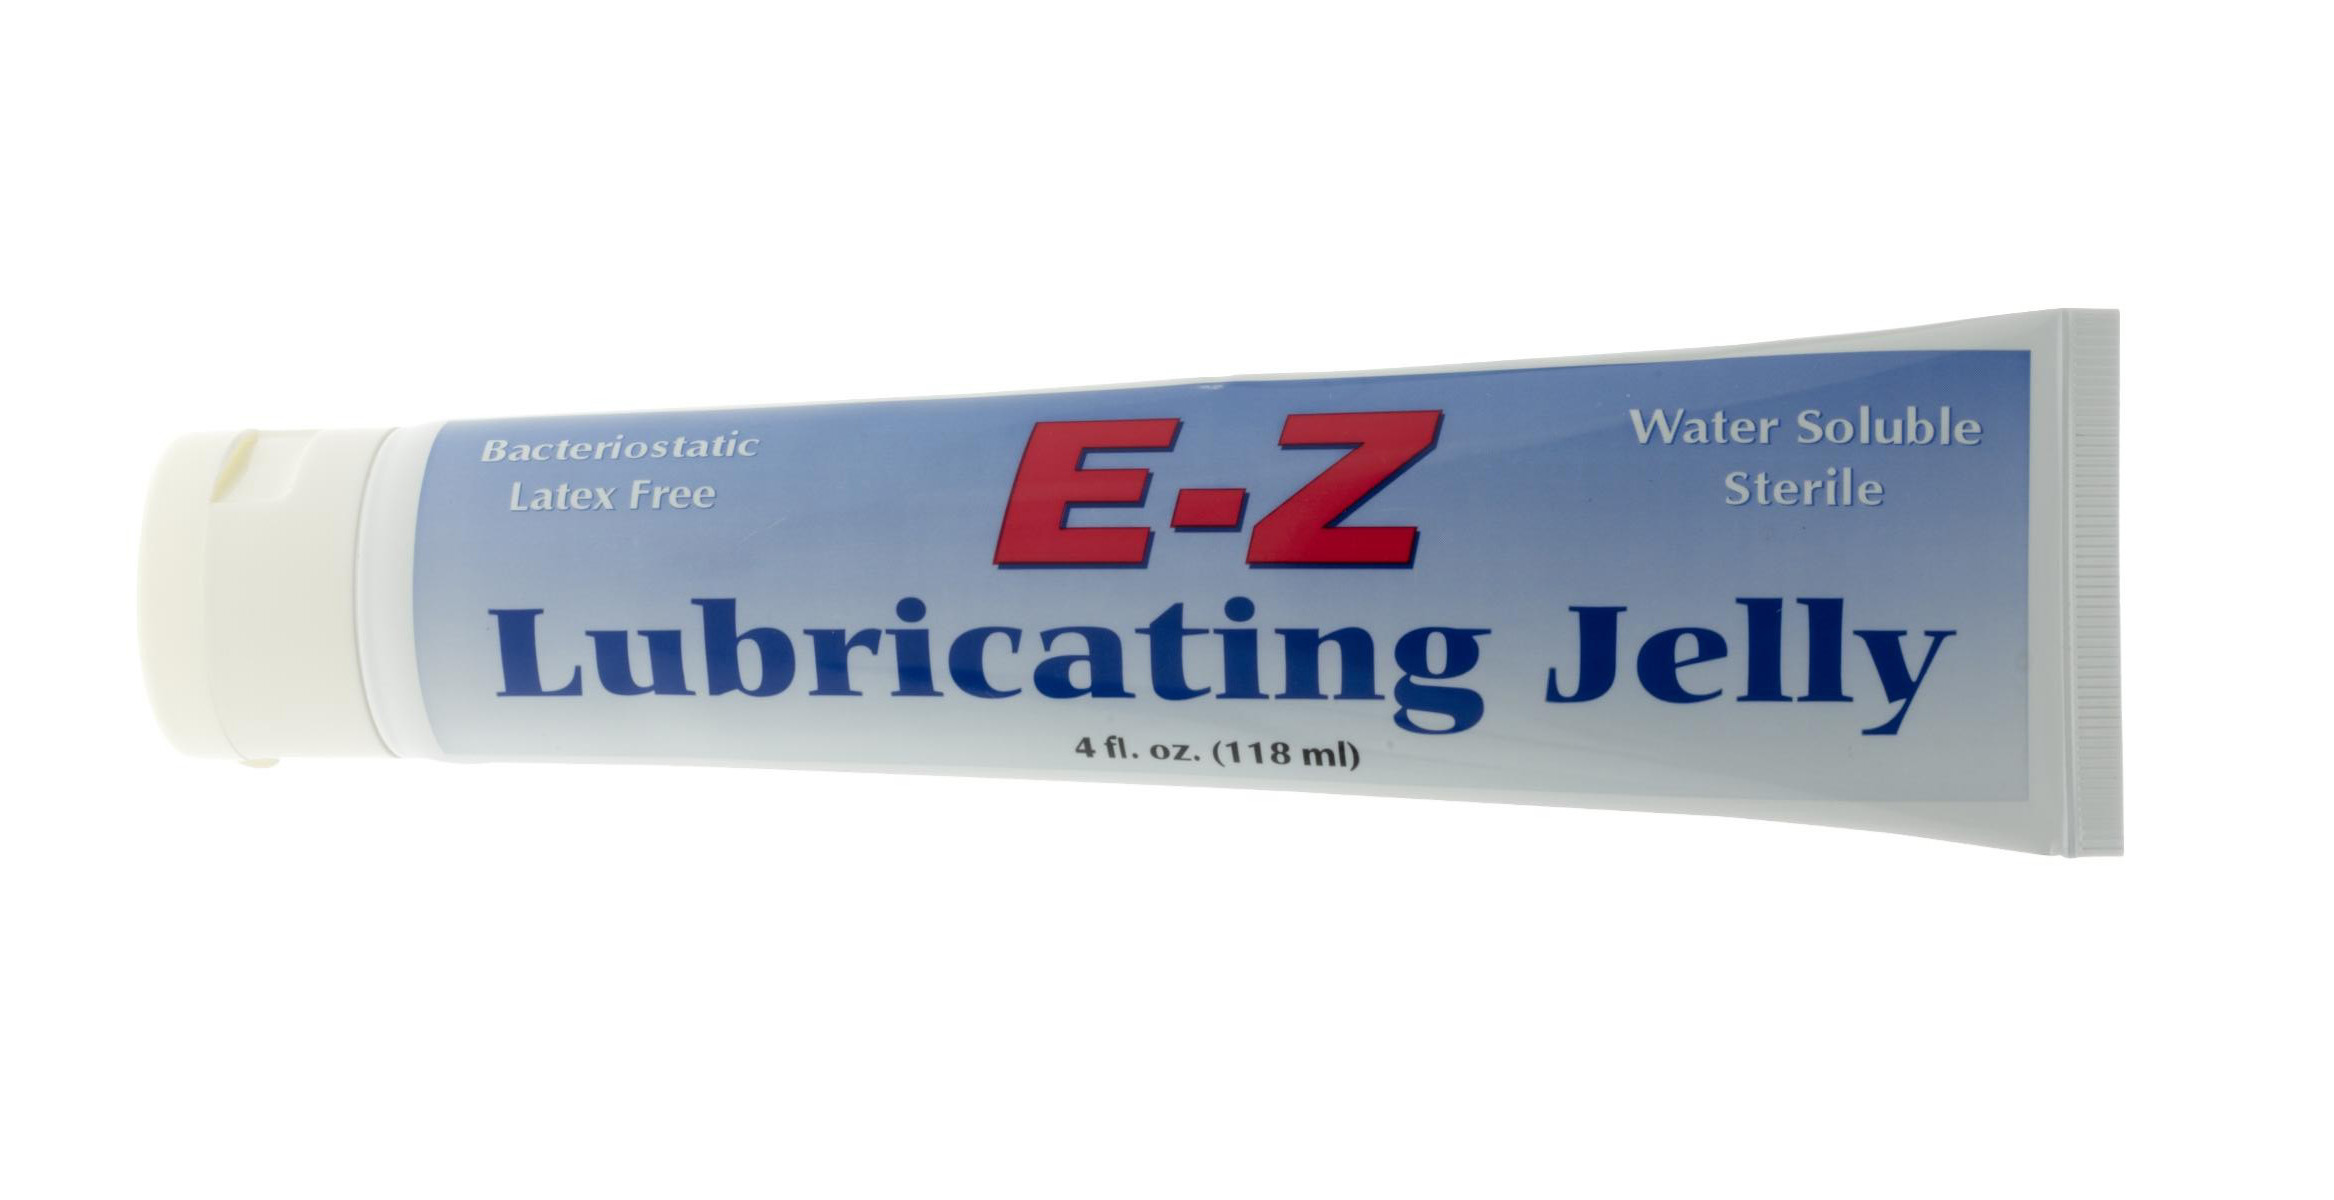 Lubricating Jelly